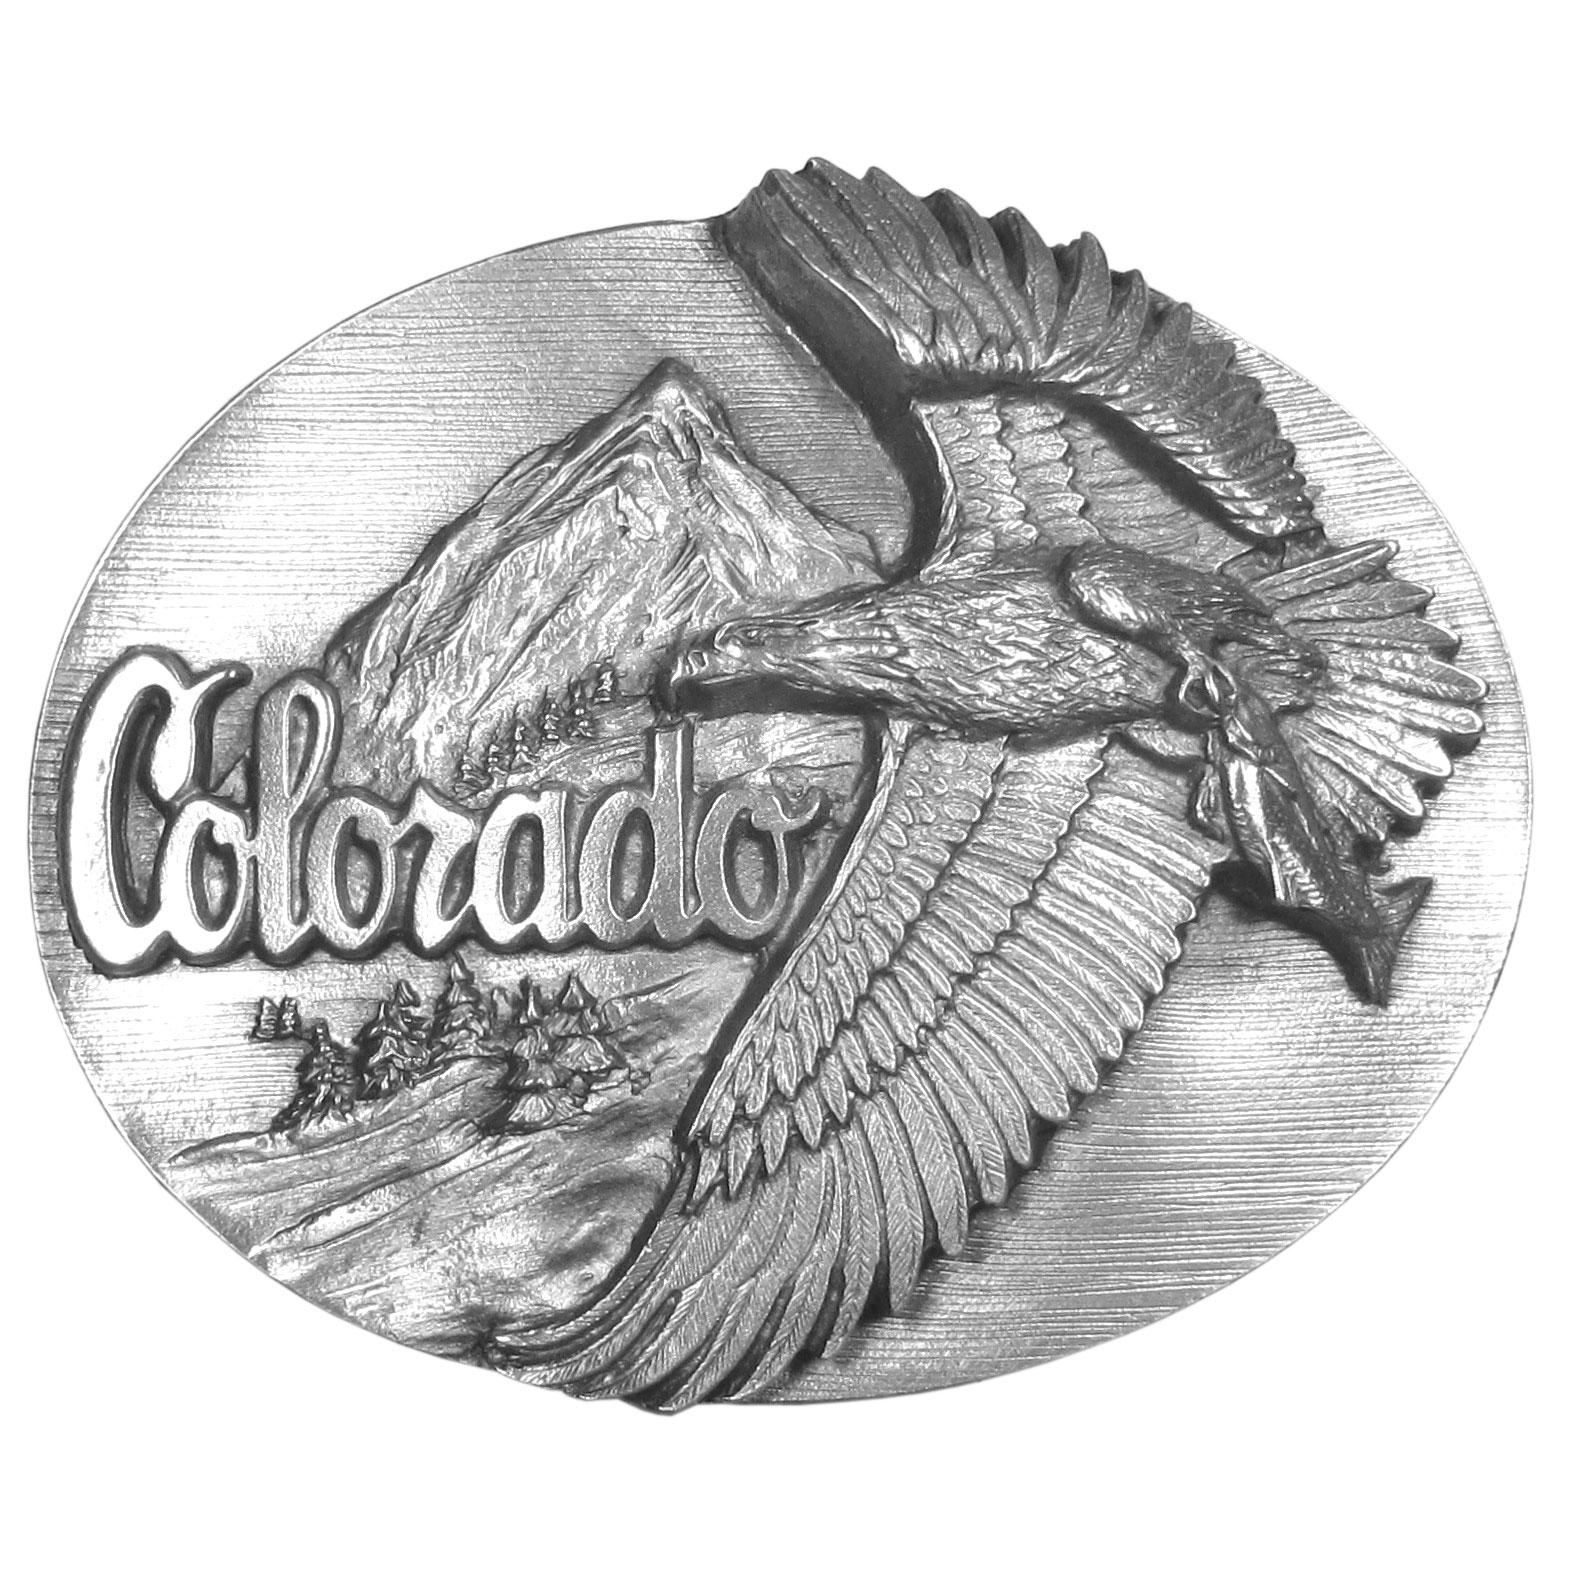 Colorado Antiqued Belt Buckle - Finely sculpted and intricately designed belt buckle. Our unique designs often become collector's items.